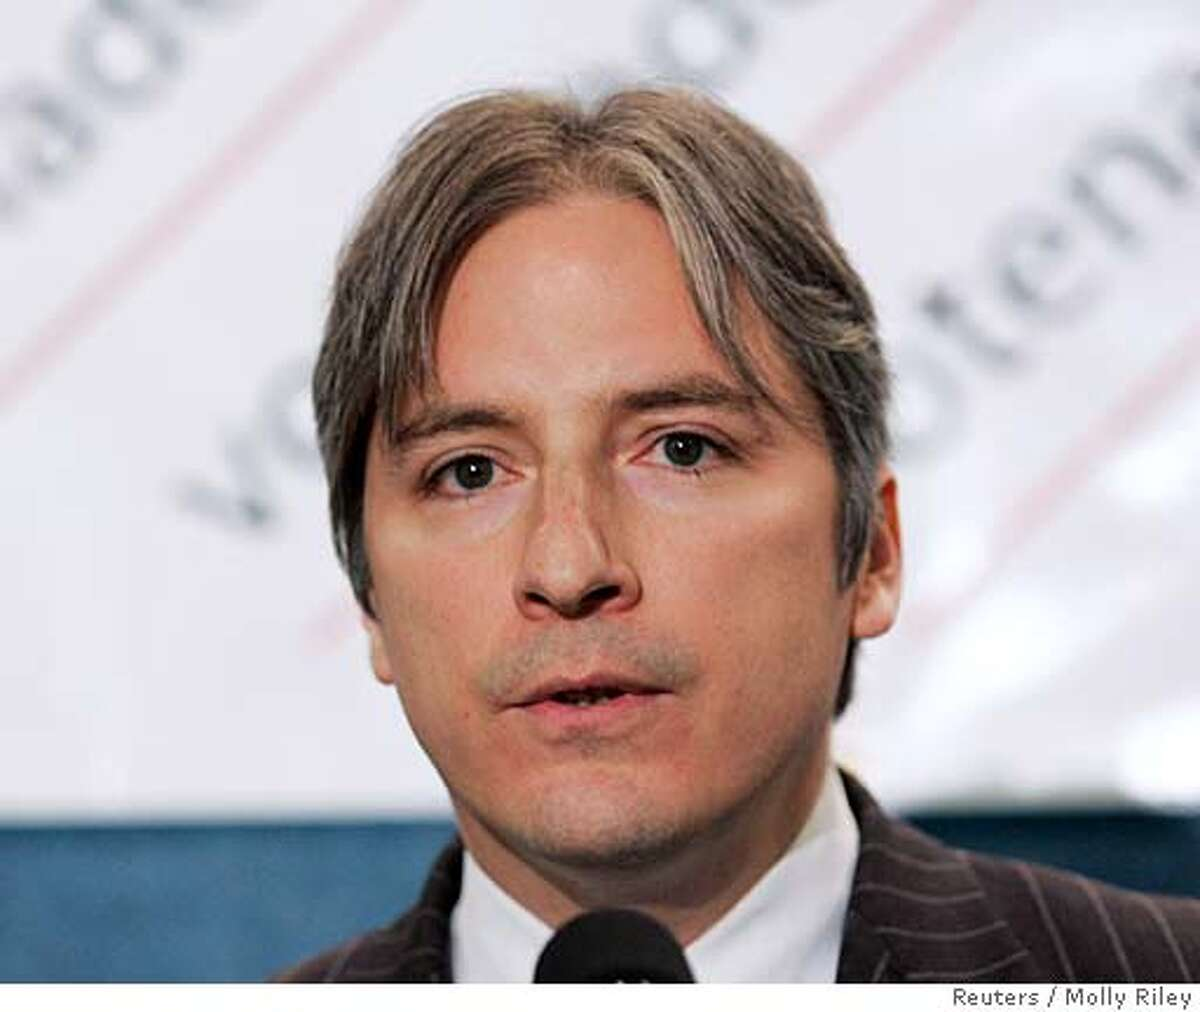 Matt Gonzalez, a former member of the San Francisco Board of Supervisors, speaks after Independent U.S. presidential candidate Ralph Nader selected Gonzalez to be his running mate at the National Press Club in Washington February 28, 2008. REUTERS/Molly Riley (UNITED STATES) US PRESIDENTIAL ELECTION CAMPAIGN 2008 (USA)